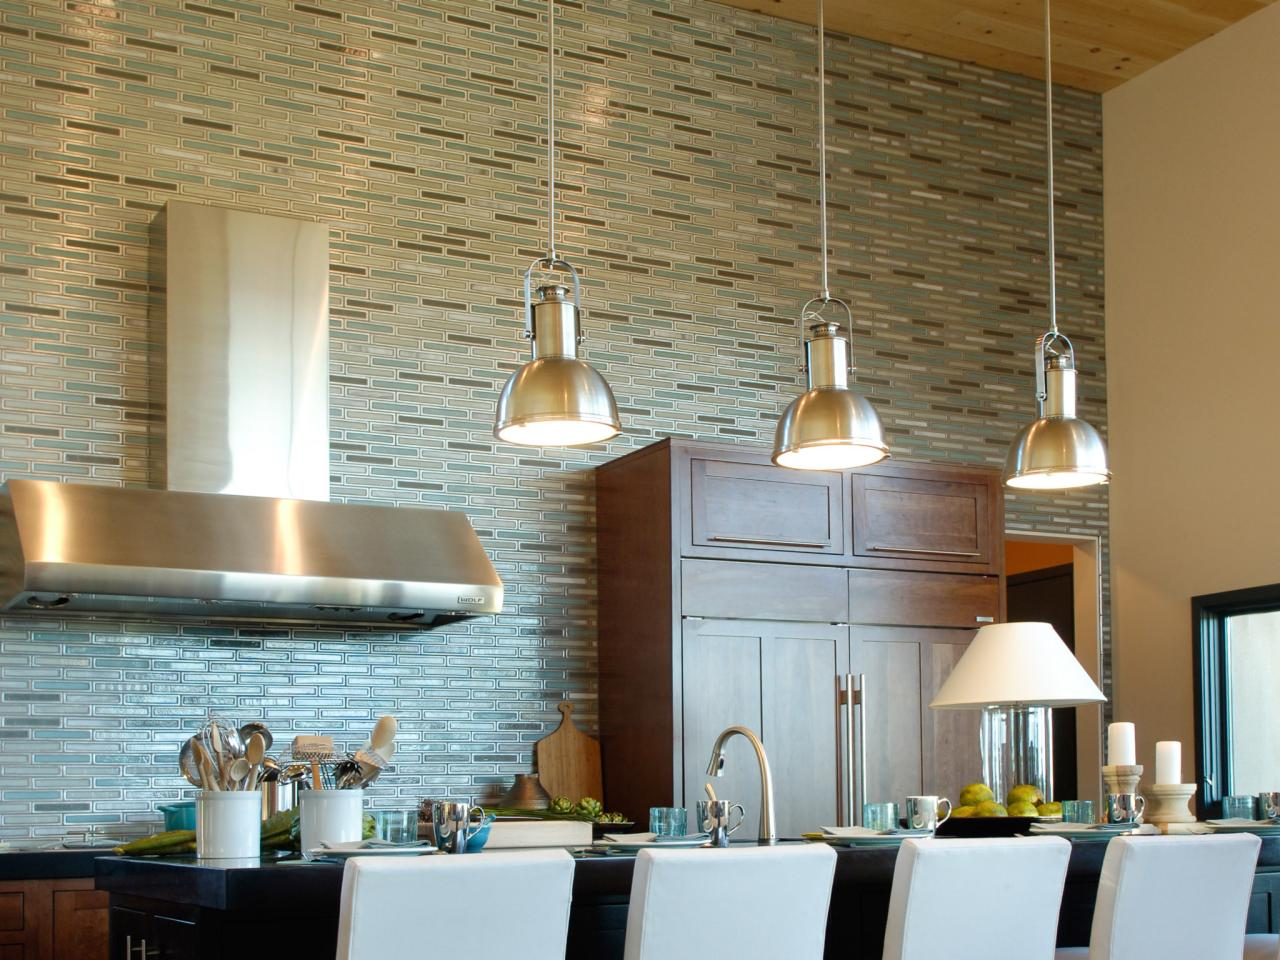 Tile backsplash ideas pictures tips from hgtv hgtv - Backsplash ideas kitchen ...